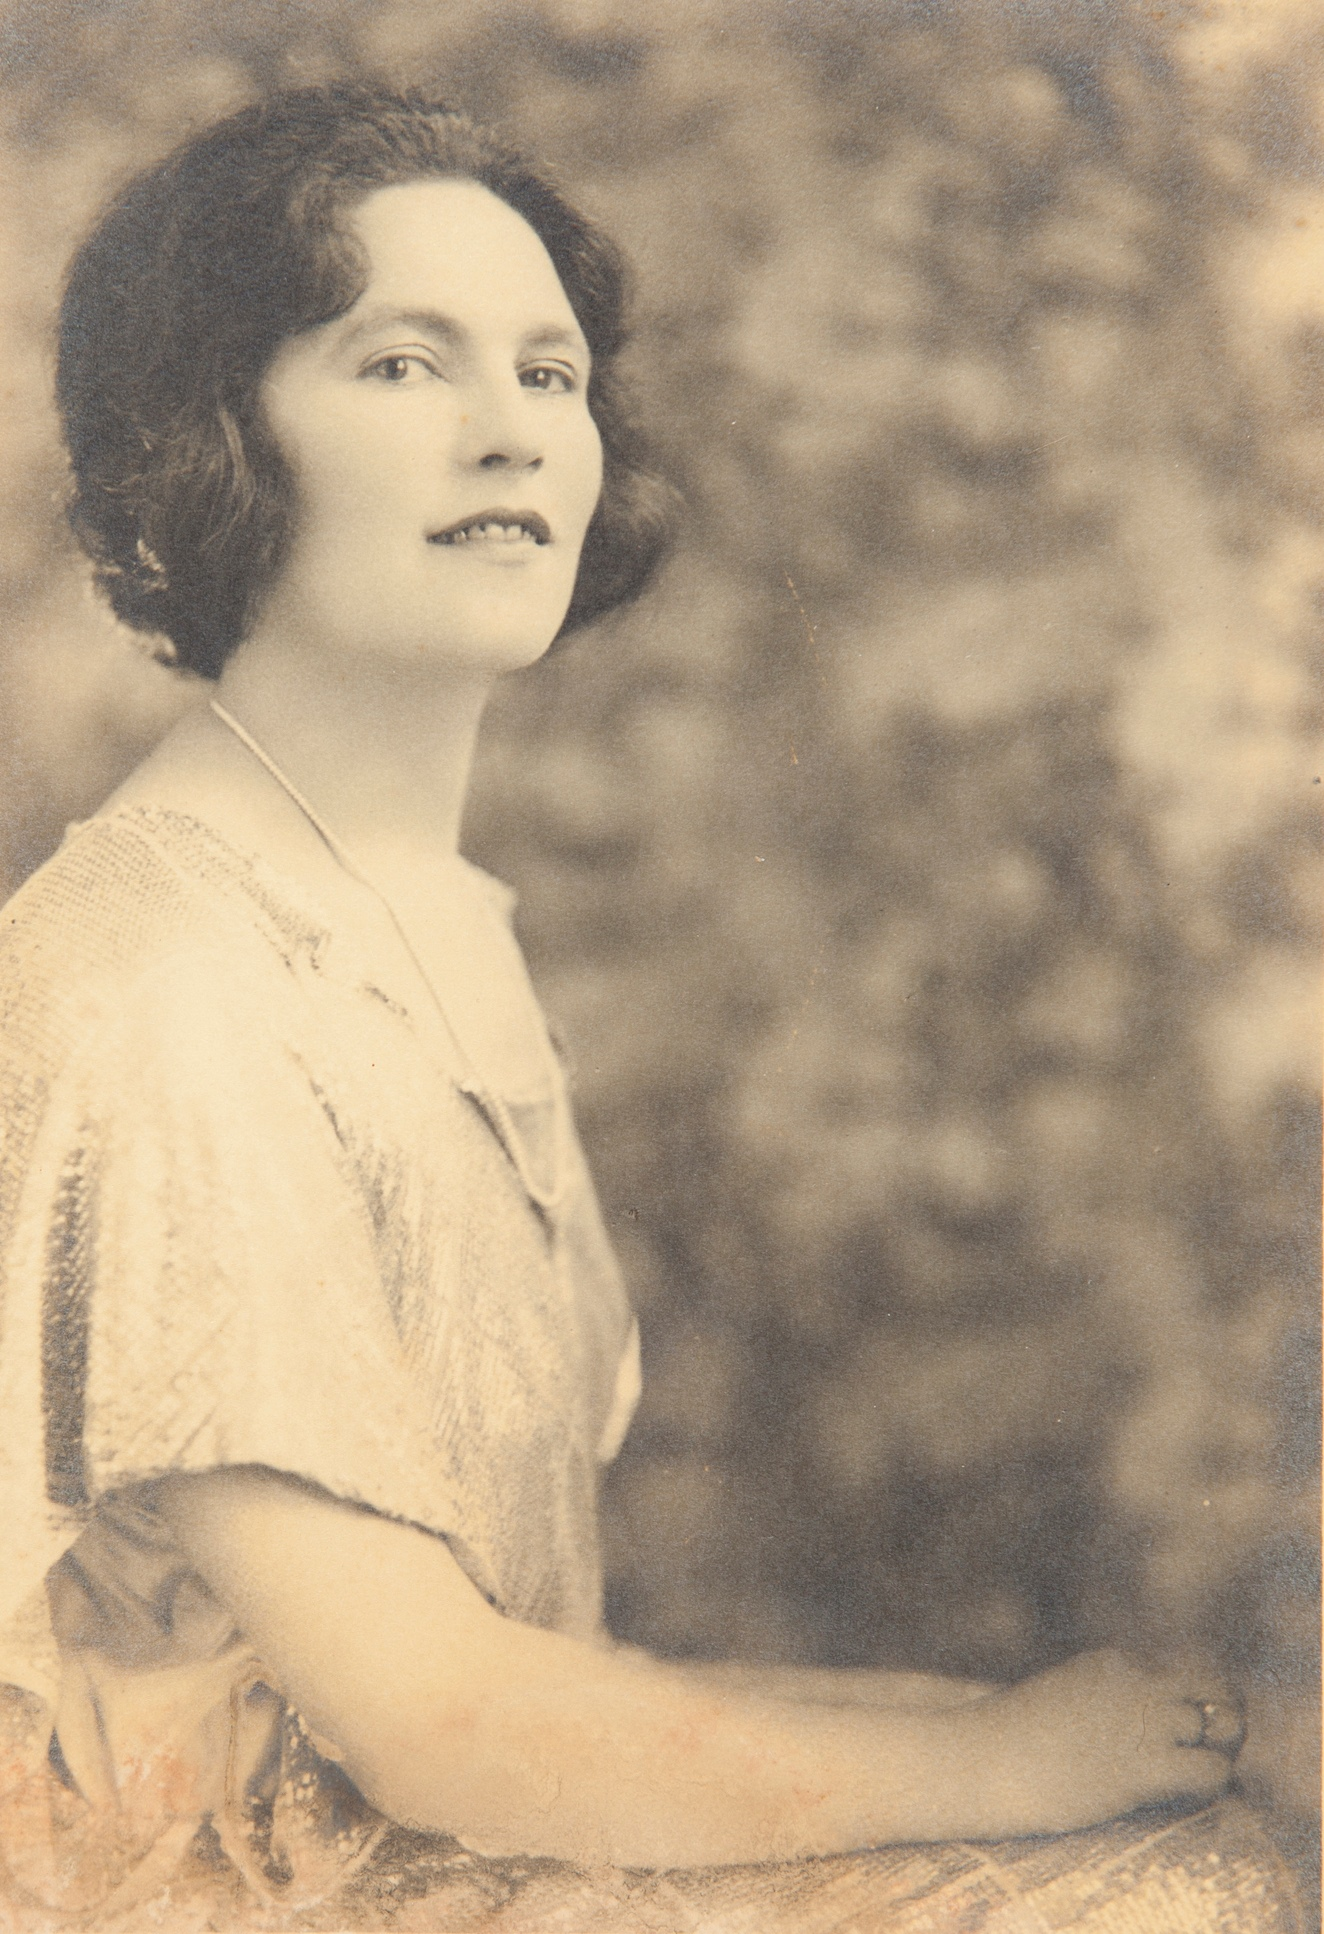 Studio portrait of Linda Dibbs, nee Alexander, around 1923 / Bernice Agar